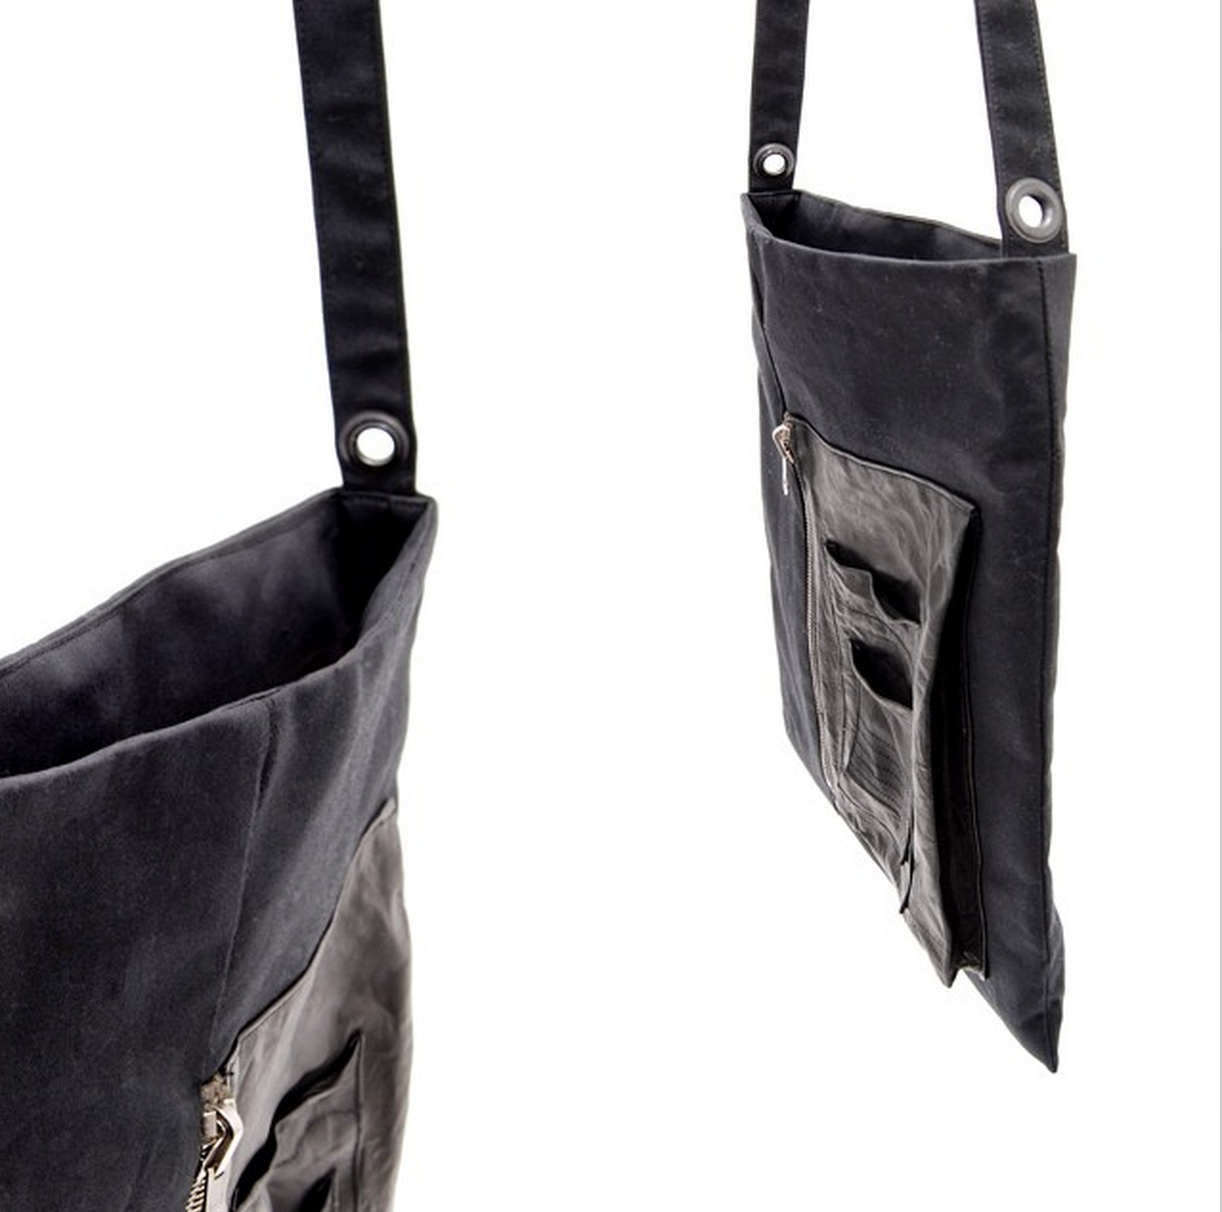 N.I.C.E. Collective's Bomber Tote in black cotton and lambskin leather. Made in San Francisco.